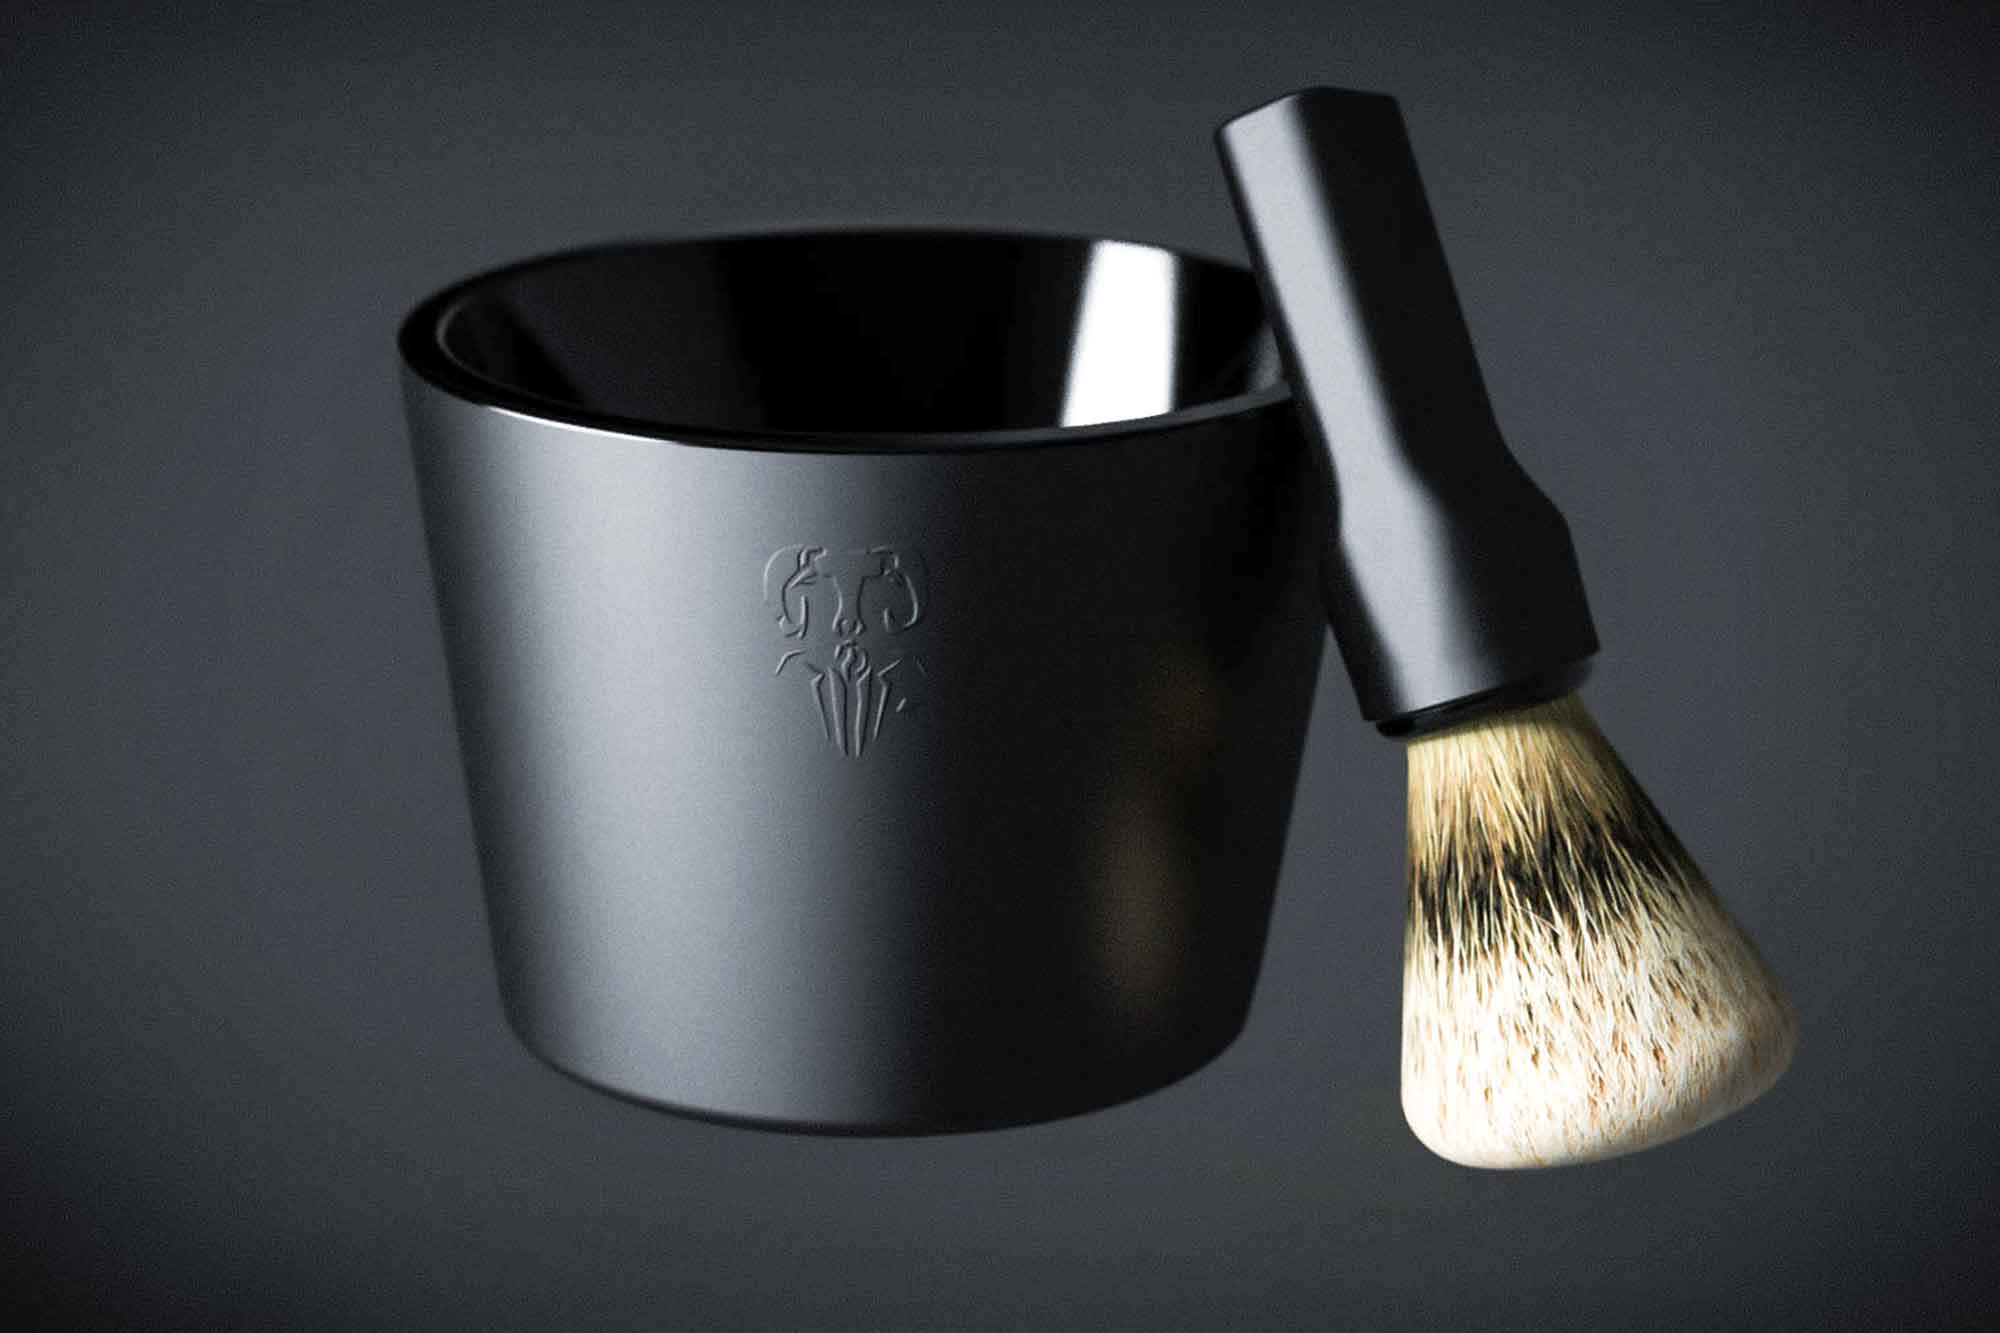 The shaving set has no extant sharp edges, but uses a CMF contrast to accomplish the same affect.